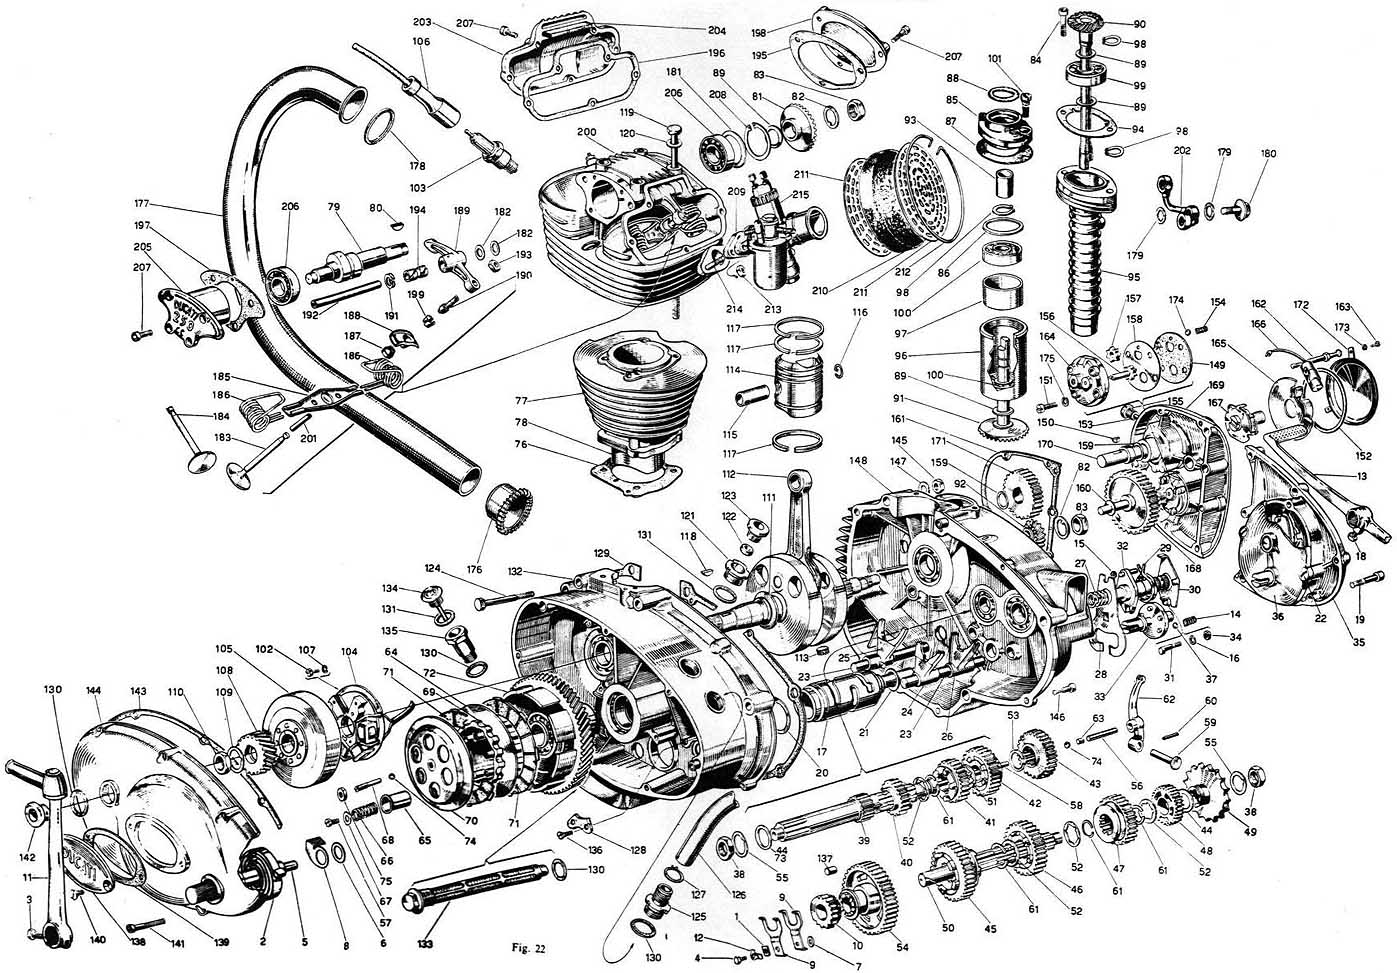 Yamaha Rzr400 Wiring Diagram also Question Findshop 25 in addition Vault Ducati 1199 Sketches 67803d853105ff16 additionally Kawasaki Dirt Bike Engine Diagram in addition Triumph Bonneville Wiring Diagram. on 2013 triumph scrambler wiring diagram